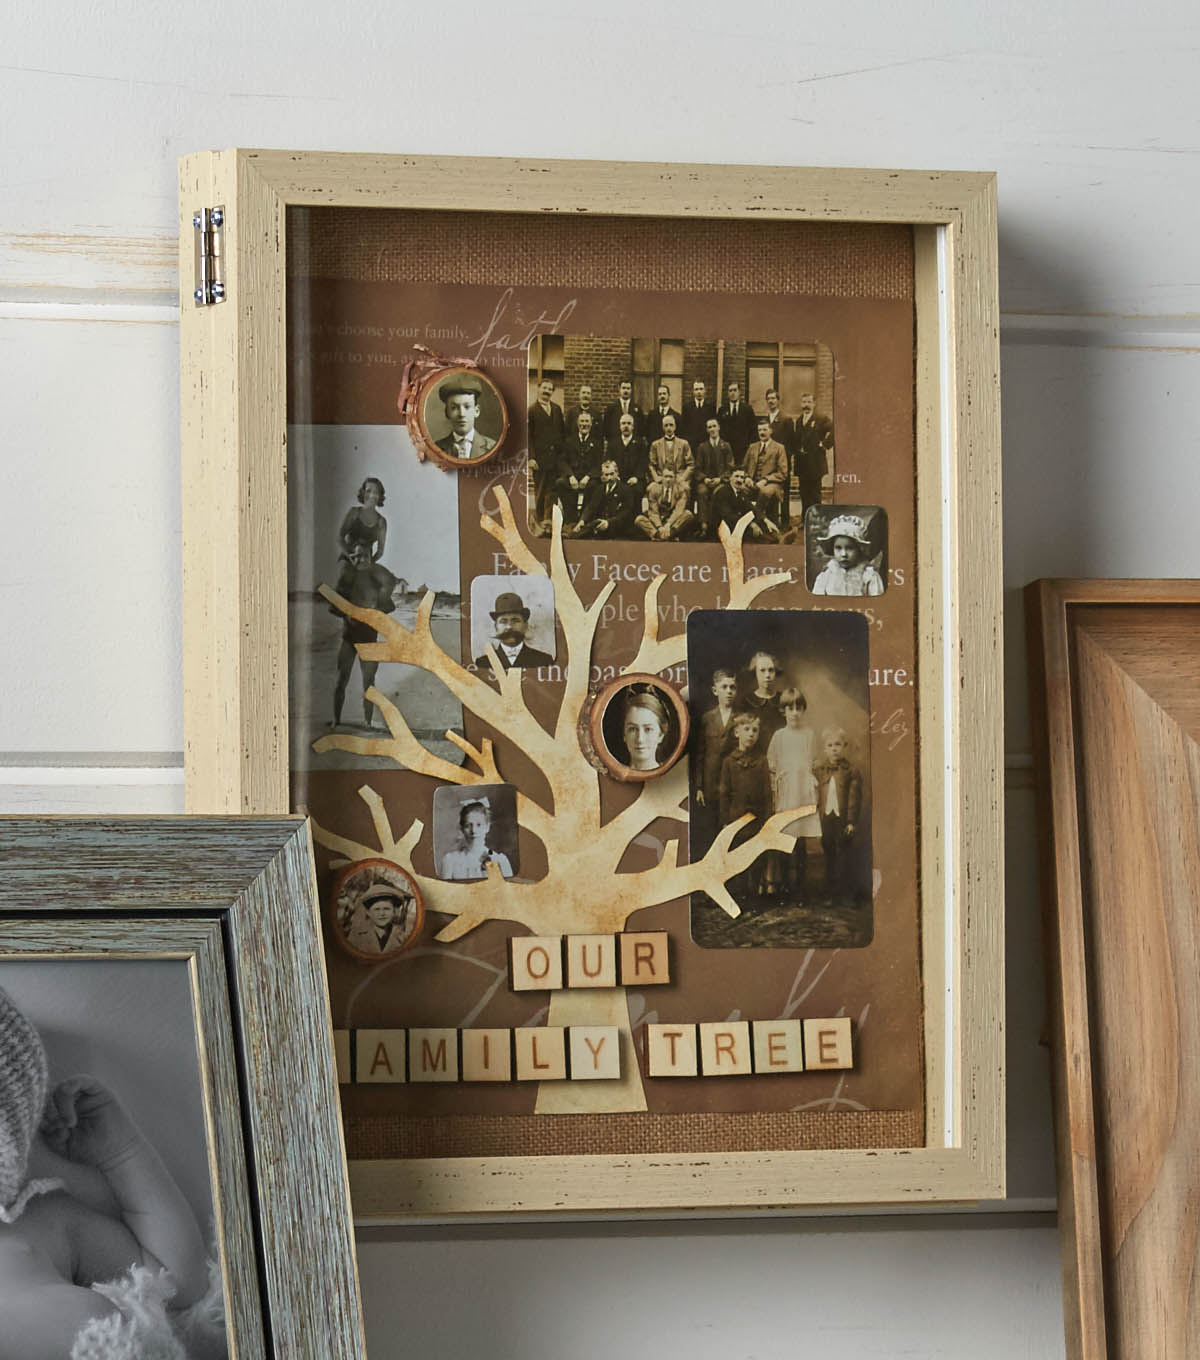 Irresistible A Jersey How To Make A Shadow Box Table How To Make A Family Tree Shadow Box How To Make A Family Tree Shadow Box Joann How To Make A Shadow Box photos How To Make A Shadow Box